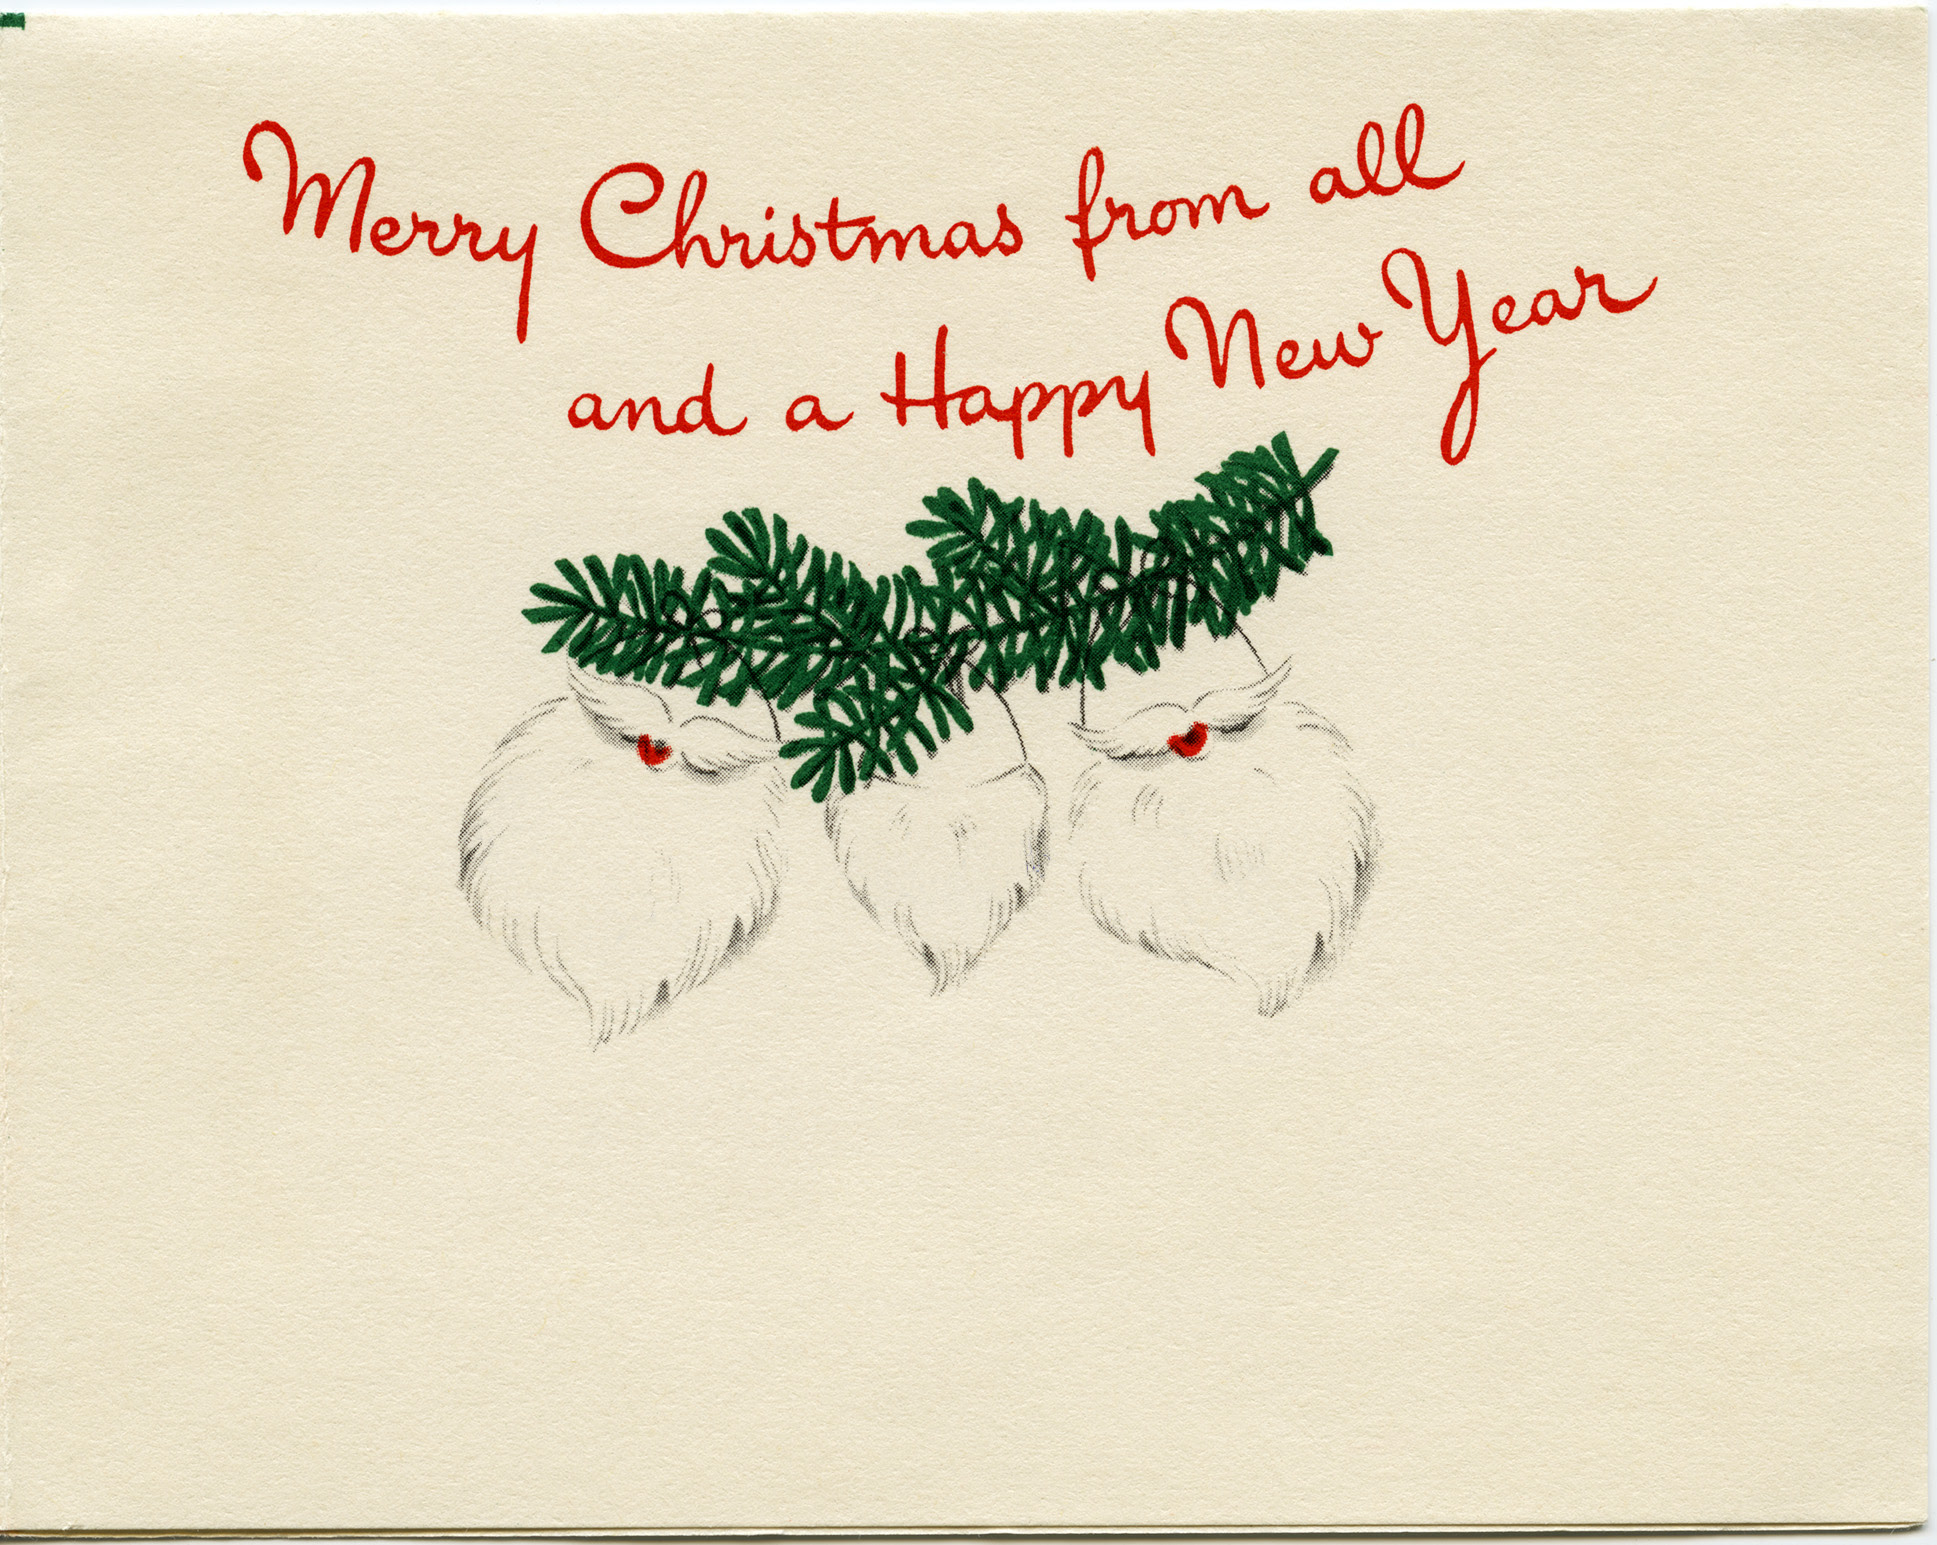 christmas and happy new year inside of wreath drawing clip art photo merry christmas and a happy new year free christian clip art image